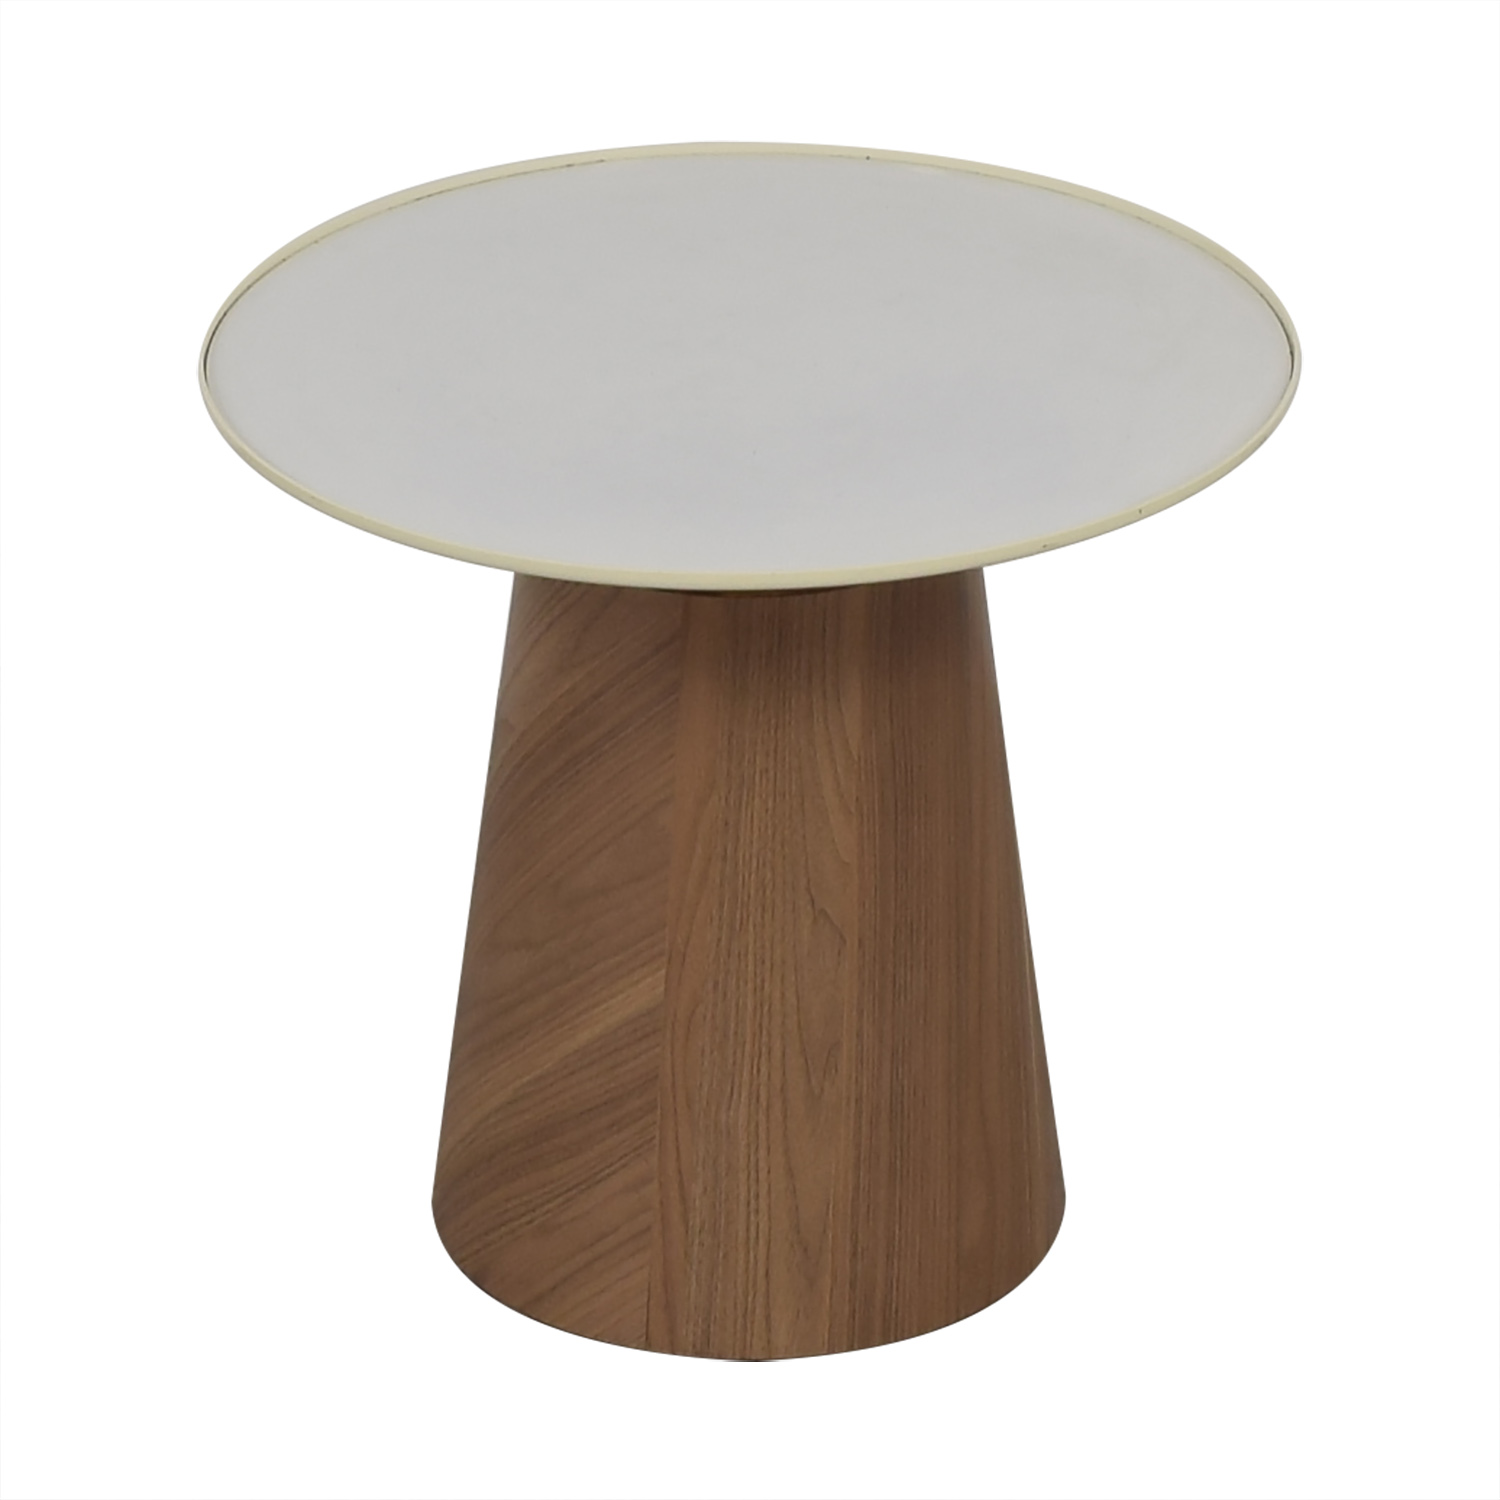 buy Steelcase Turnstone Steelcase Turnstone Campfire Round Paper Table online